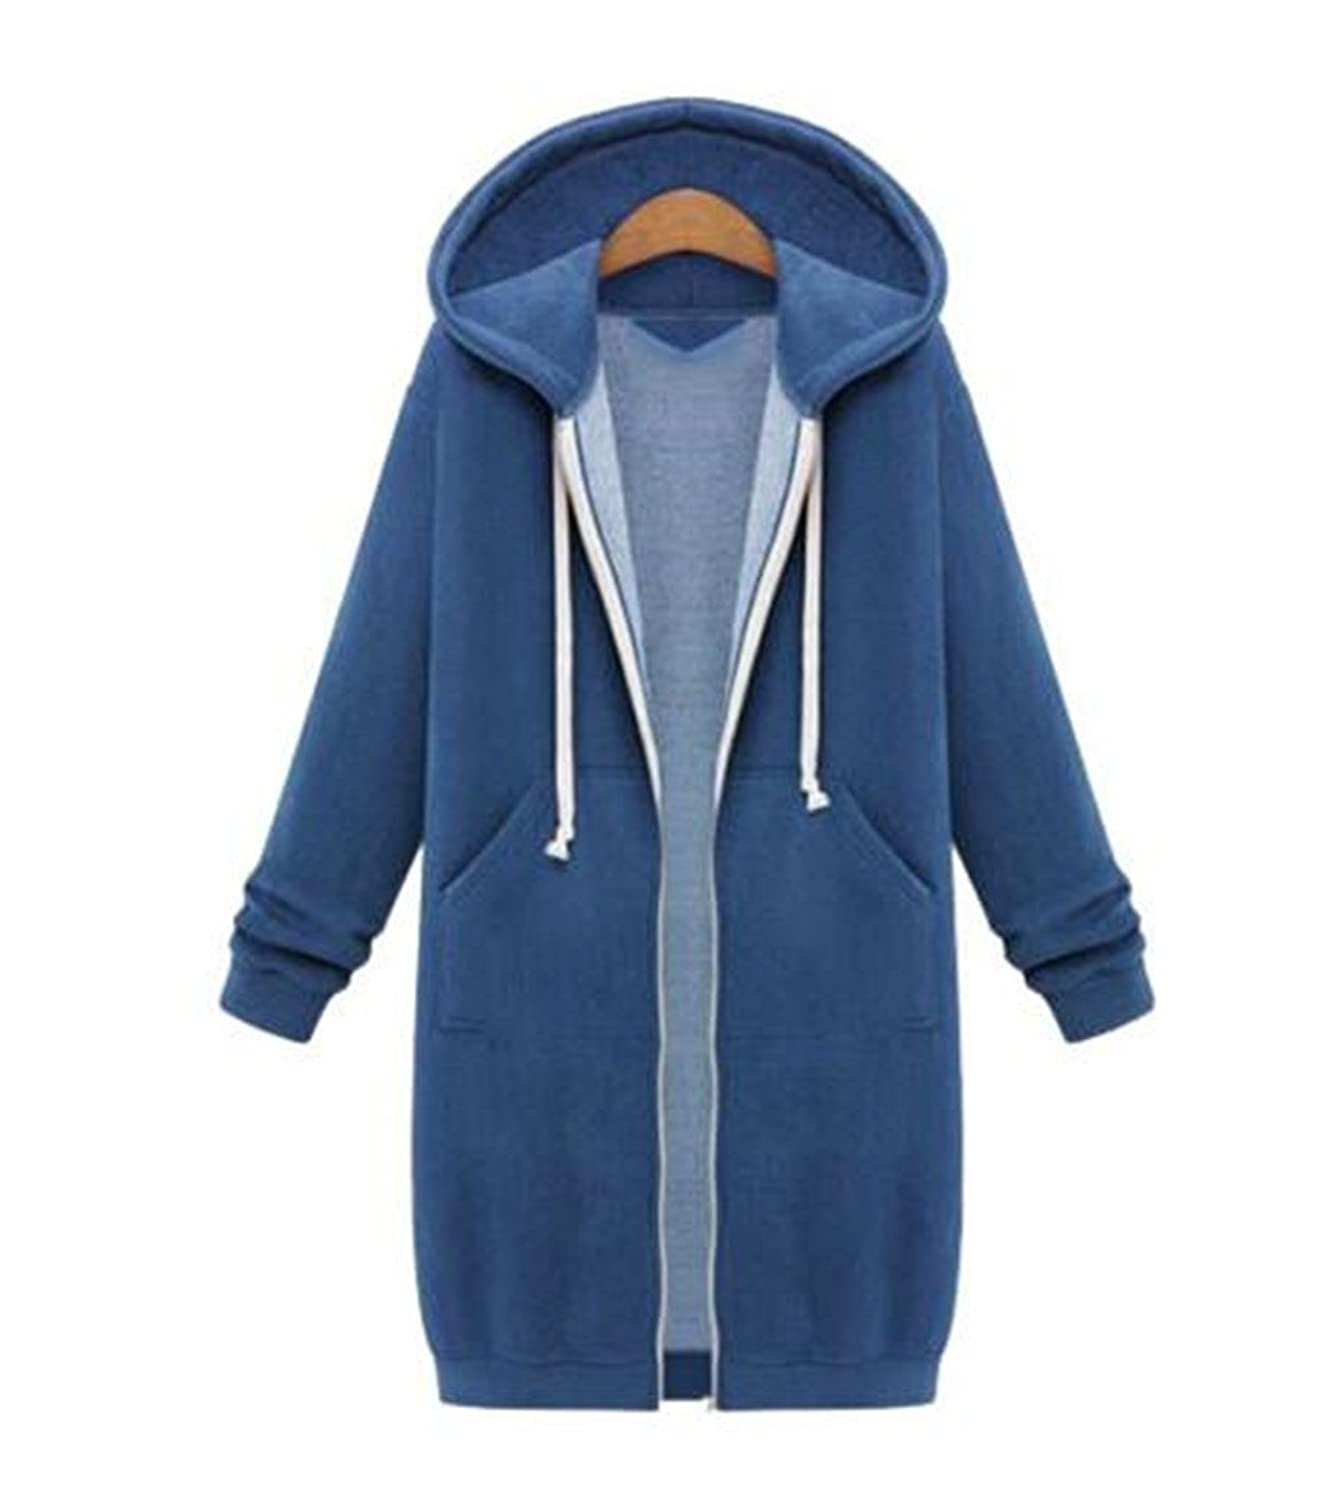 Womens Casual Zipped Hooded Thick Warm Cashmere Long Hoodie Cardigan Coat Jacket